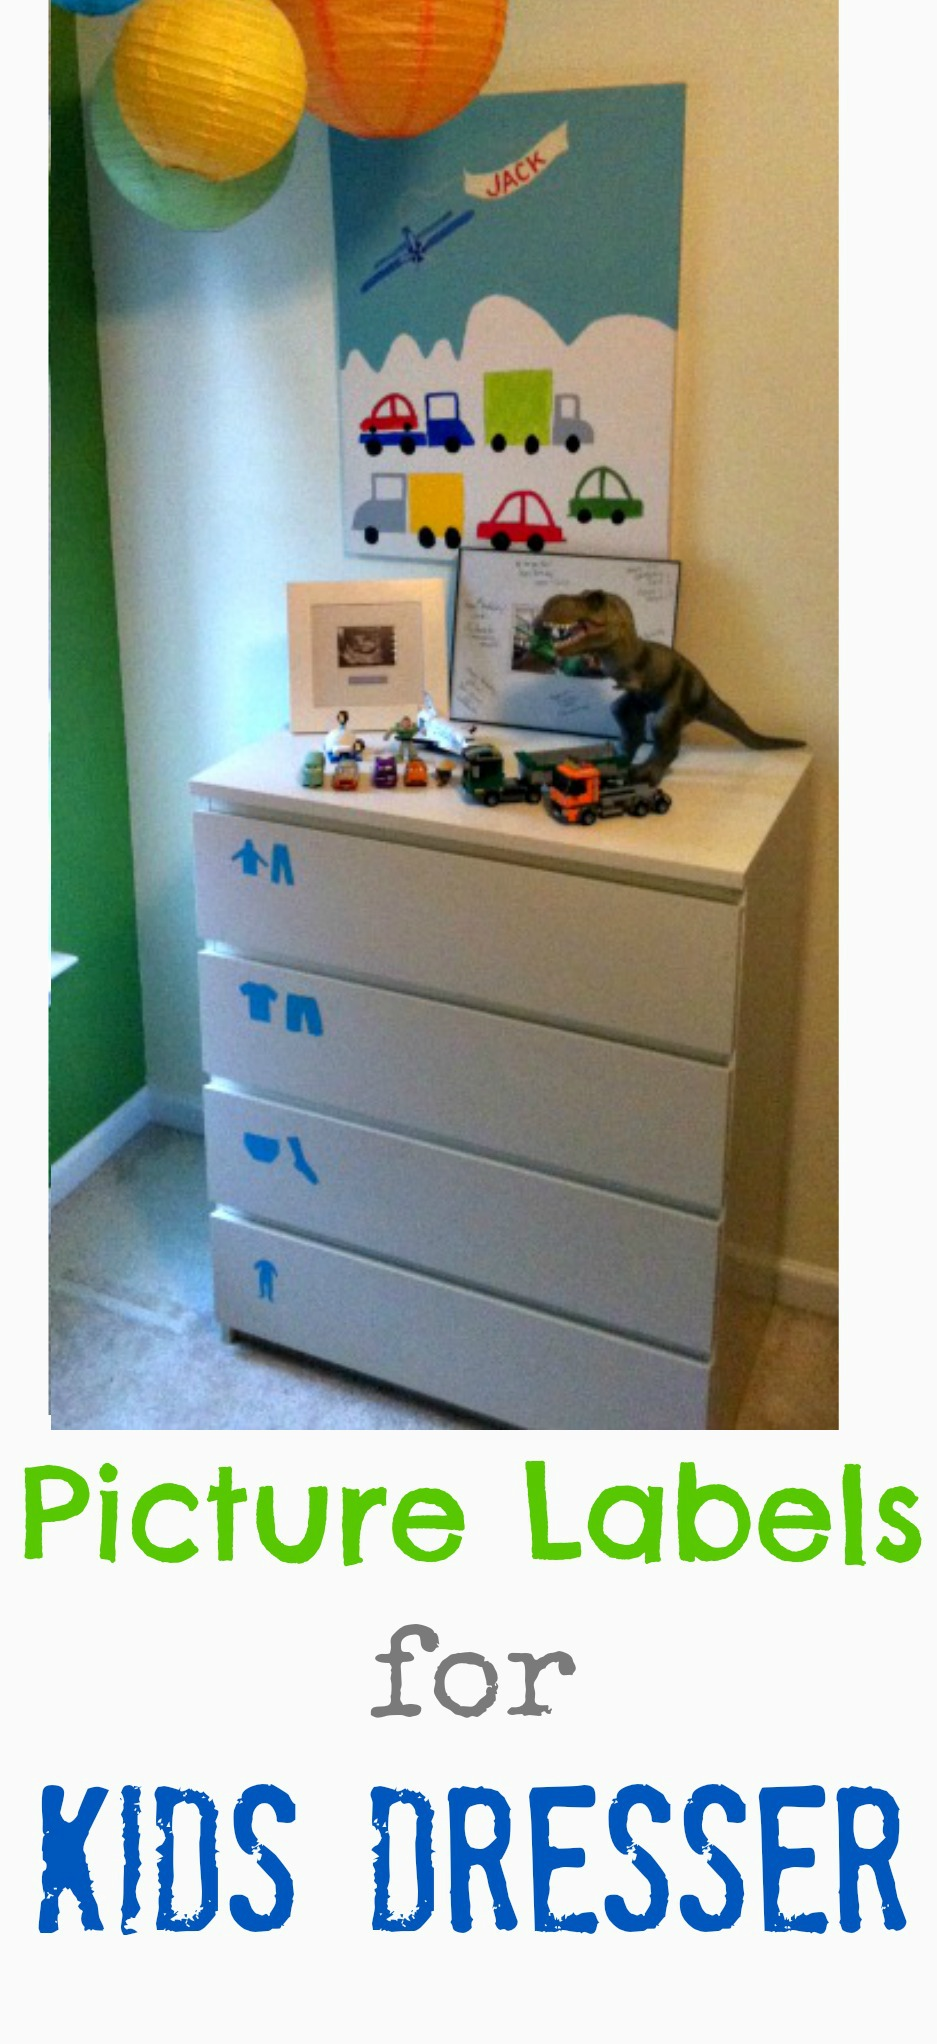 kids-bedroom-organiztion